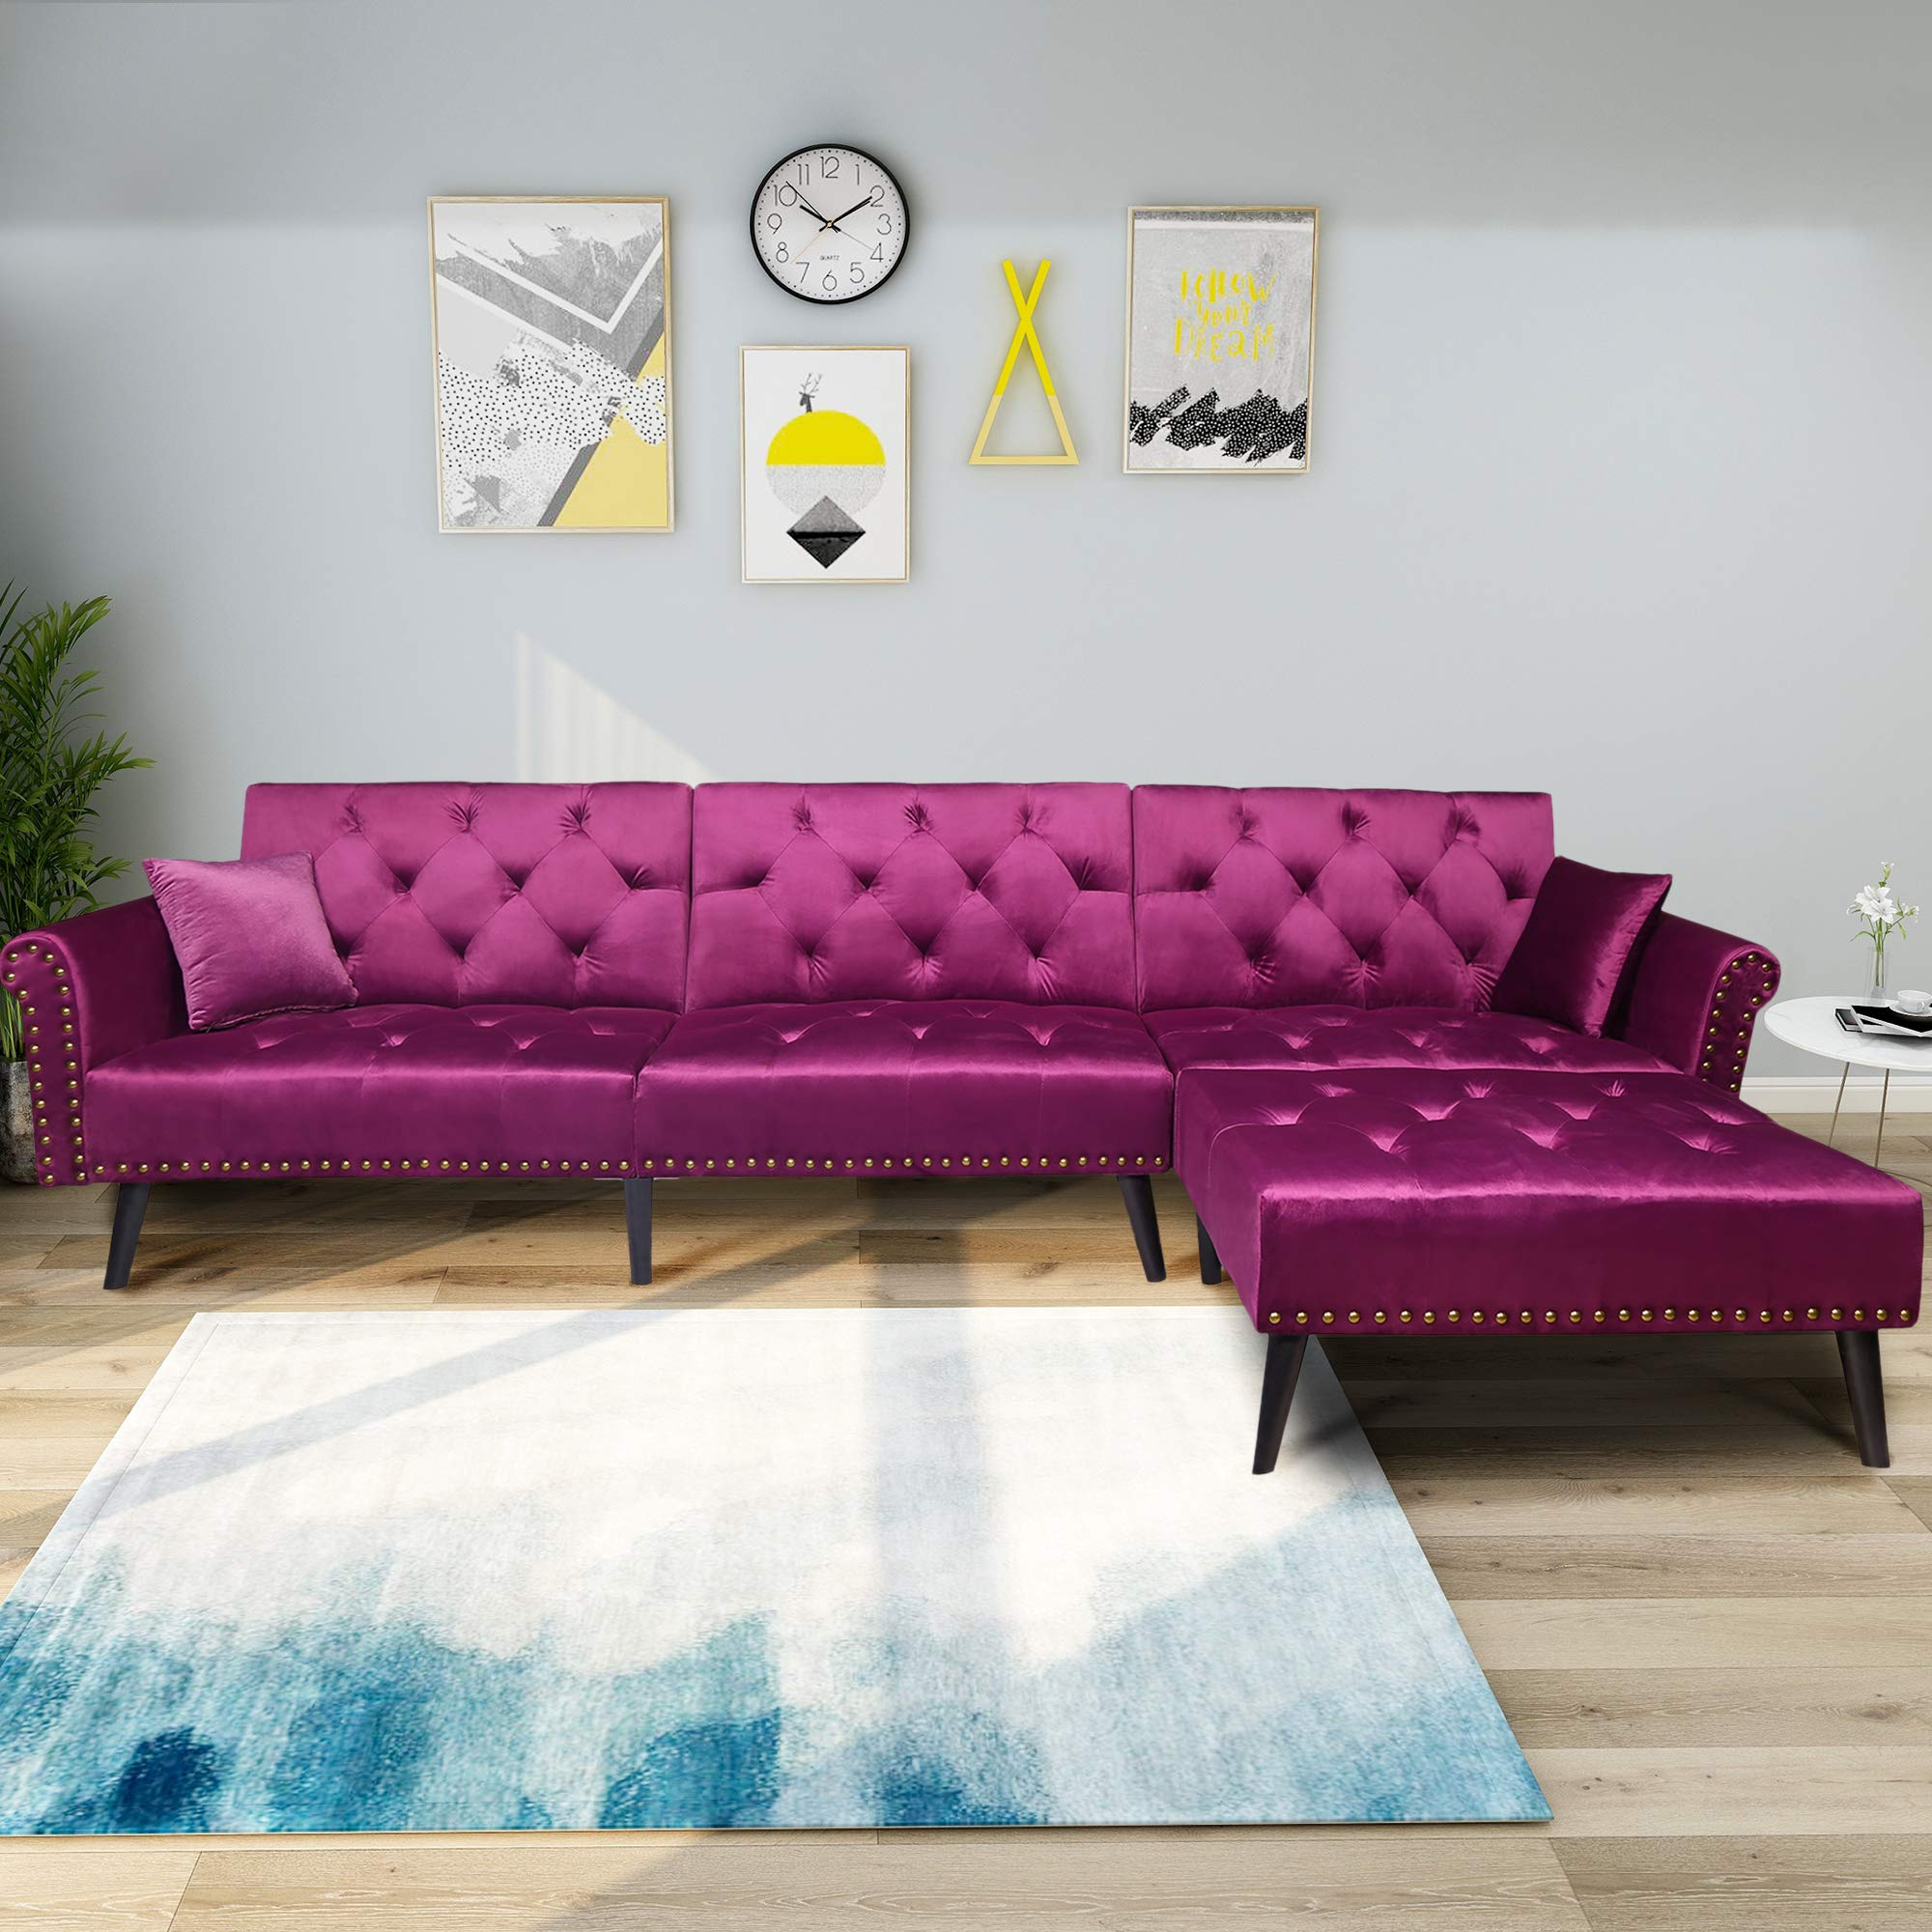 YSKWA Modern Large Velvet Fabric Sectional Sofa Reversible Chaise Lounge L-Shaped Corner Couch Sofa Bed Set for Living Room, with 2 Pillows by YSKWA